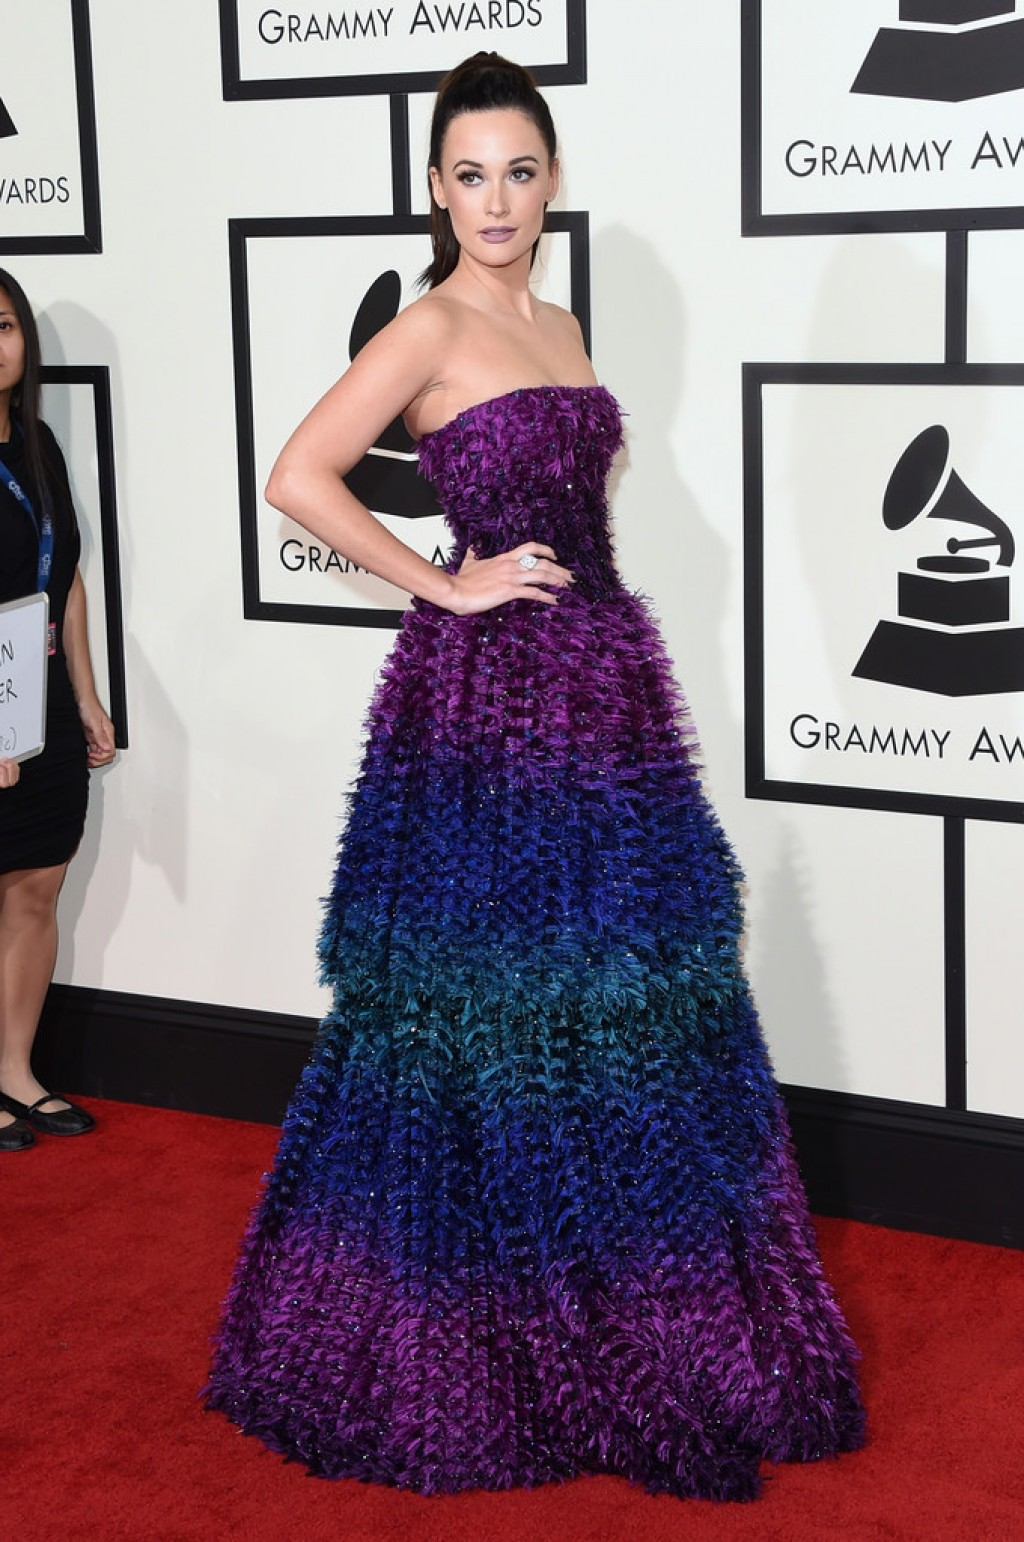 Kacey-Musgraves-Wearing-Armani-Prive-2016-Grammys-d-1024x1542